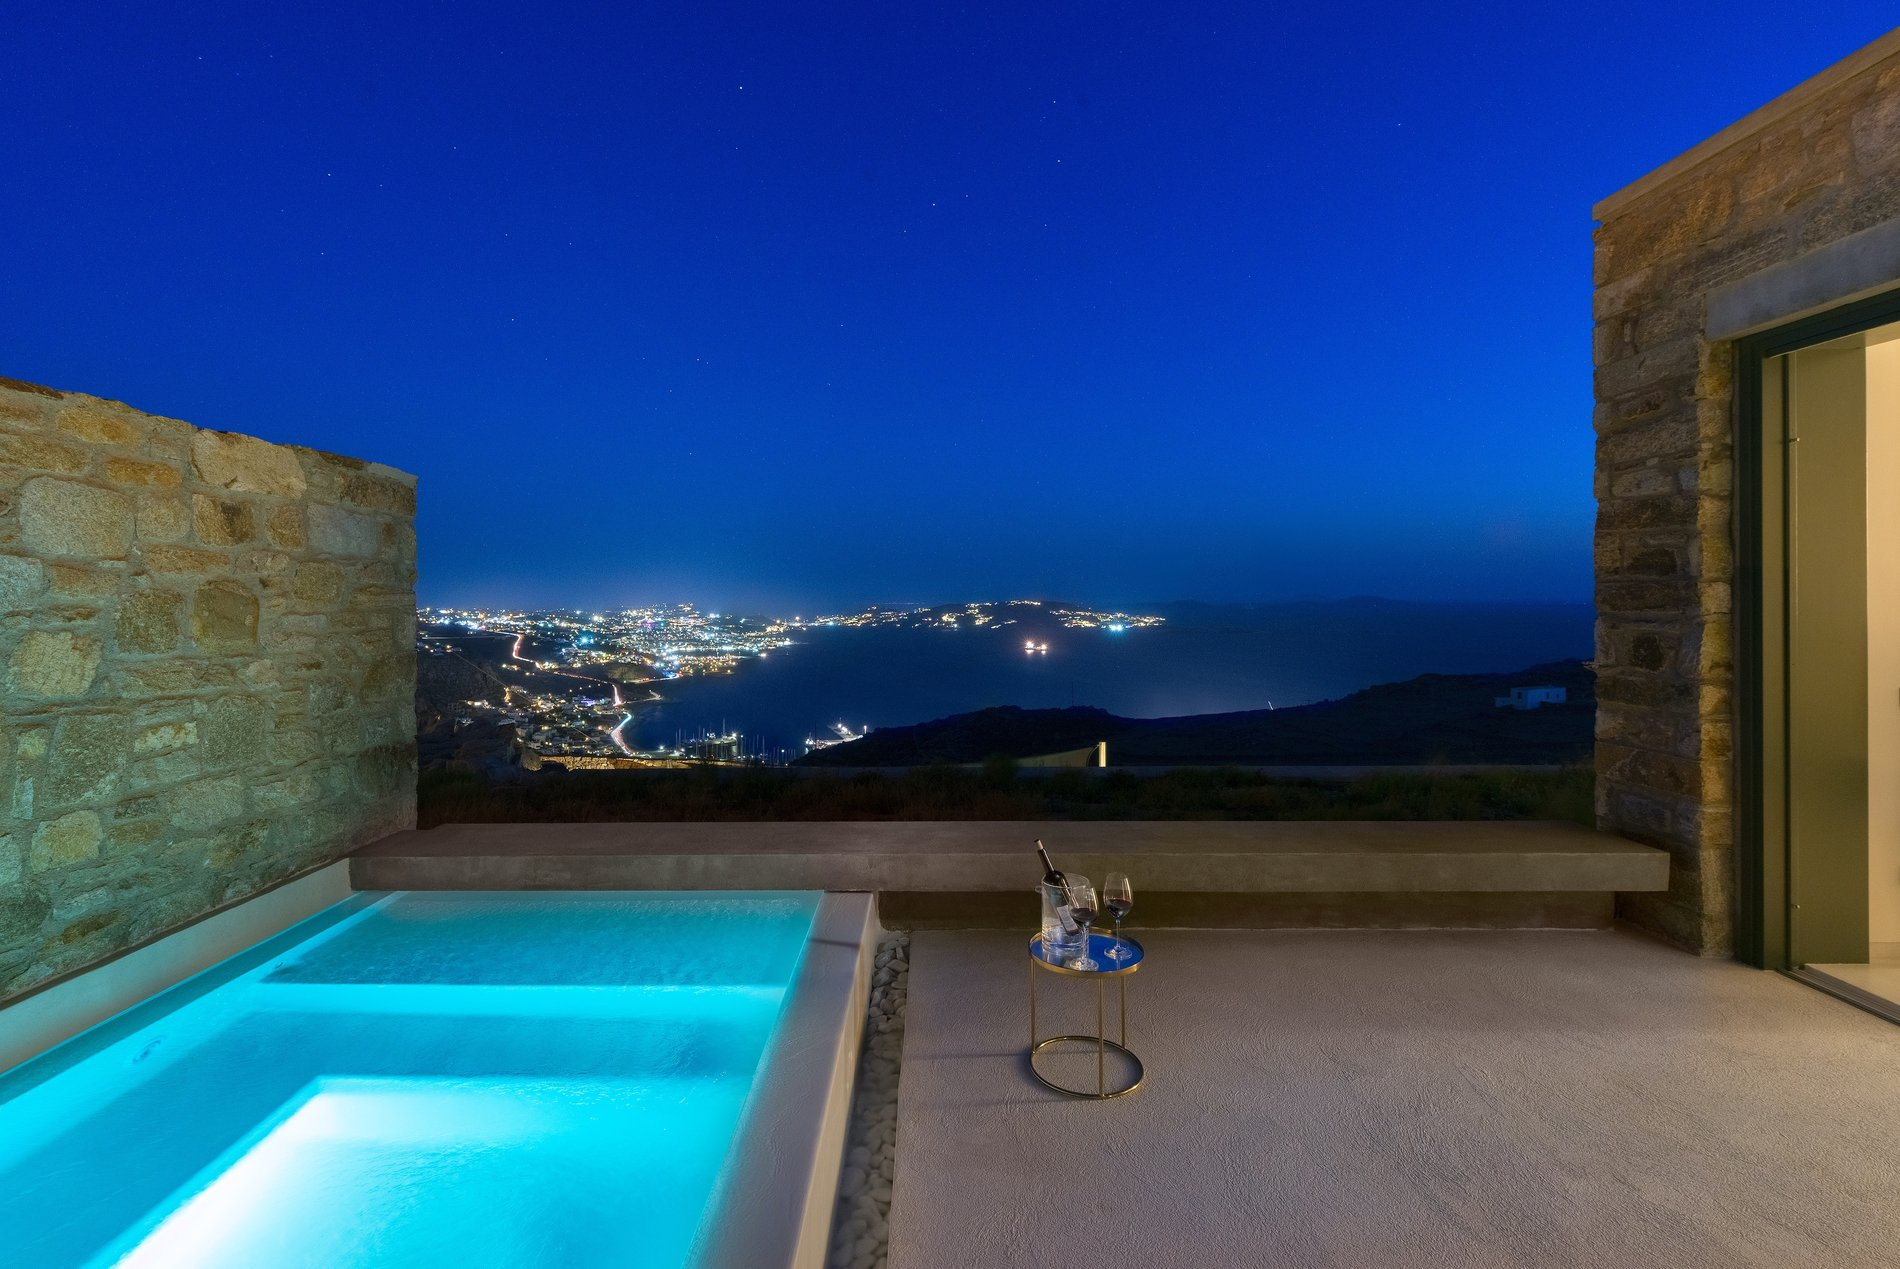 Private hot tub surrounded by real stone walls and concrete with views of Mykonos and the Mediterranean.